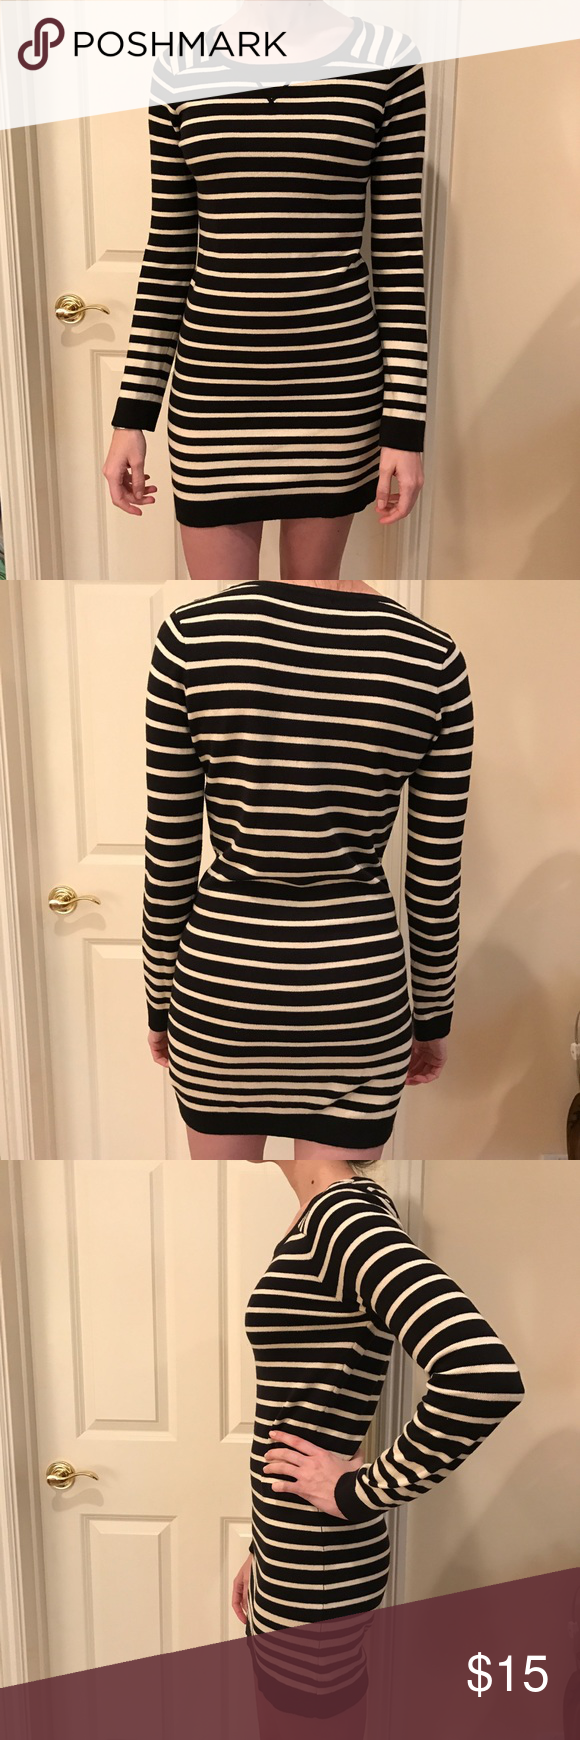 Knit Stripe Long Sleeve Dress. Black and white striped dress. The material is a stretchy knit, but it hold its shape. The neck is rounded, the sleeves are full length. Forever 21 Dresses Mini